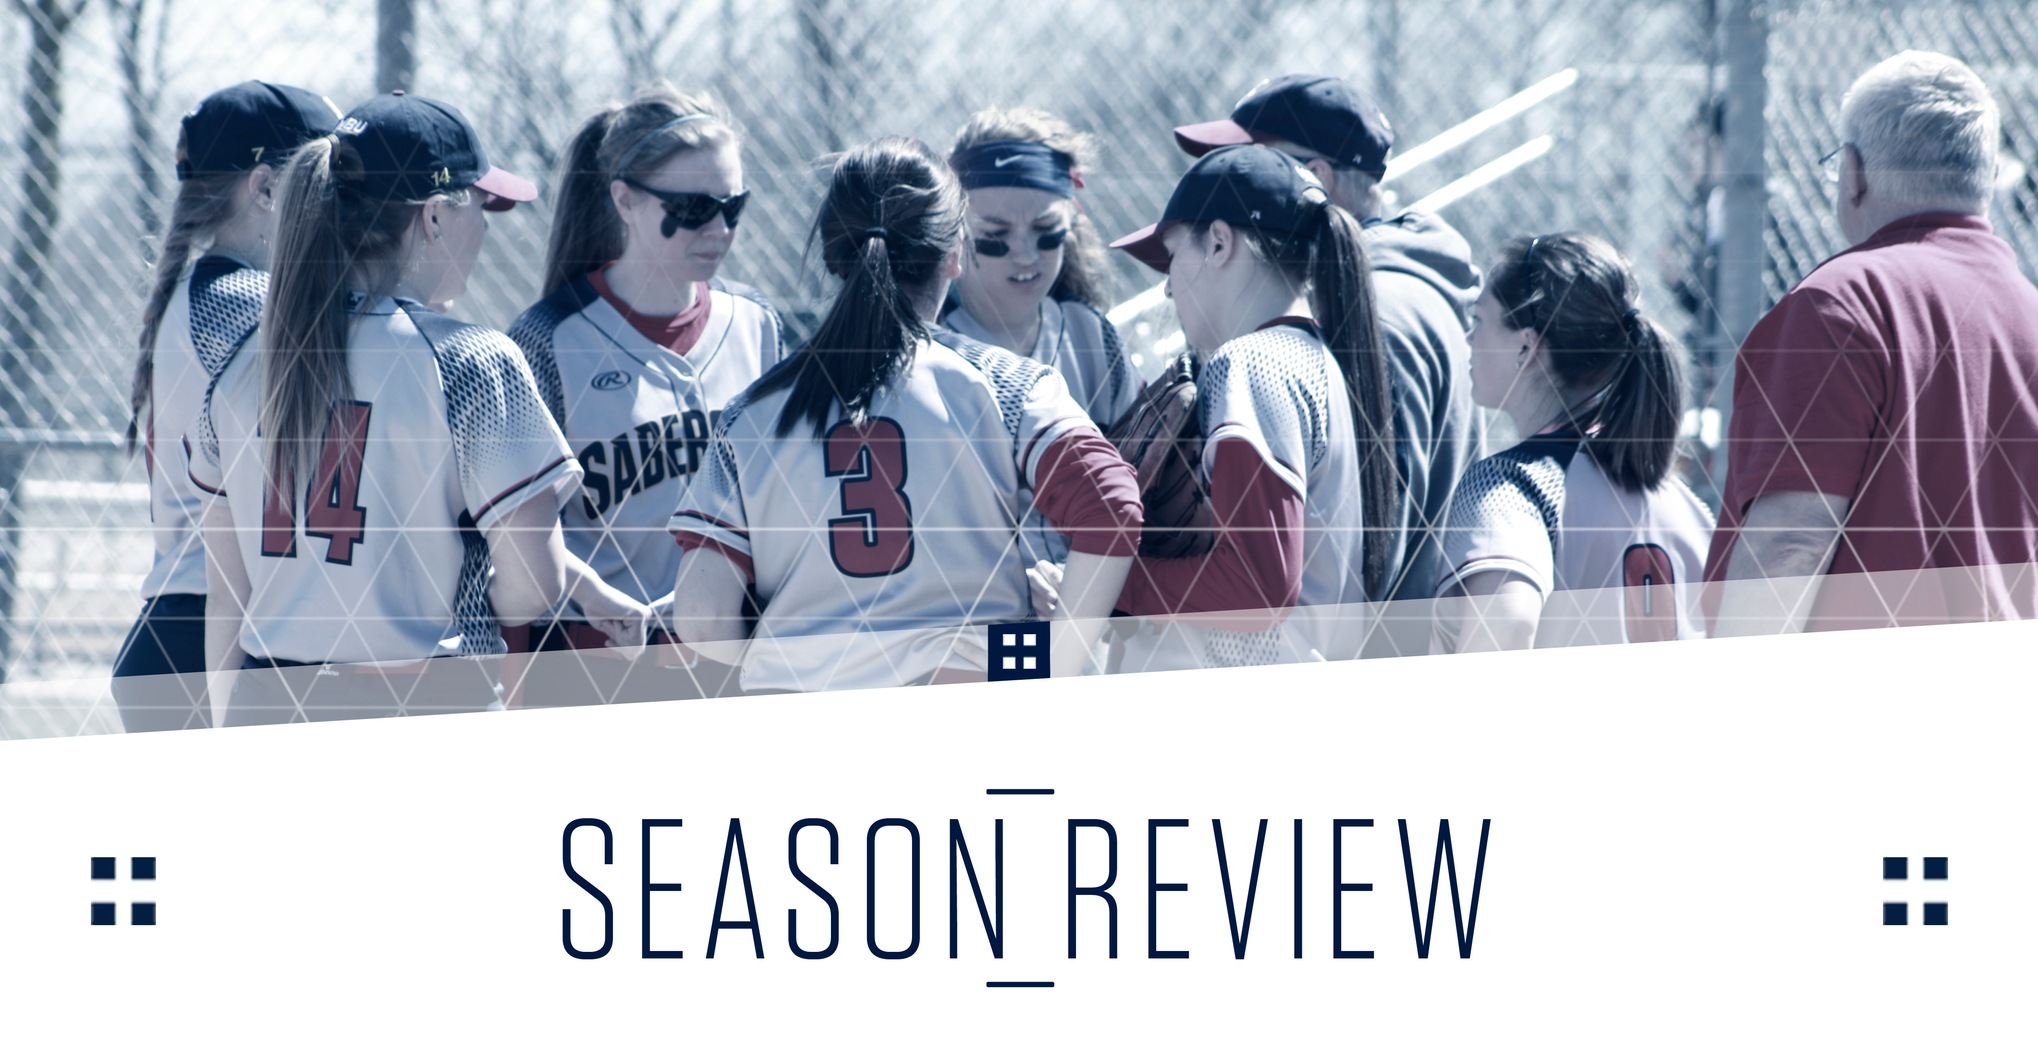 Finishing Strong: Softball Season Review